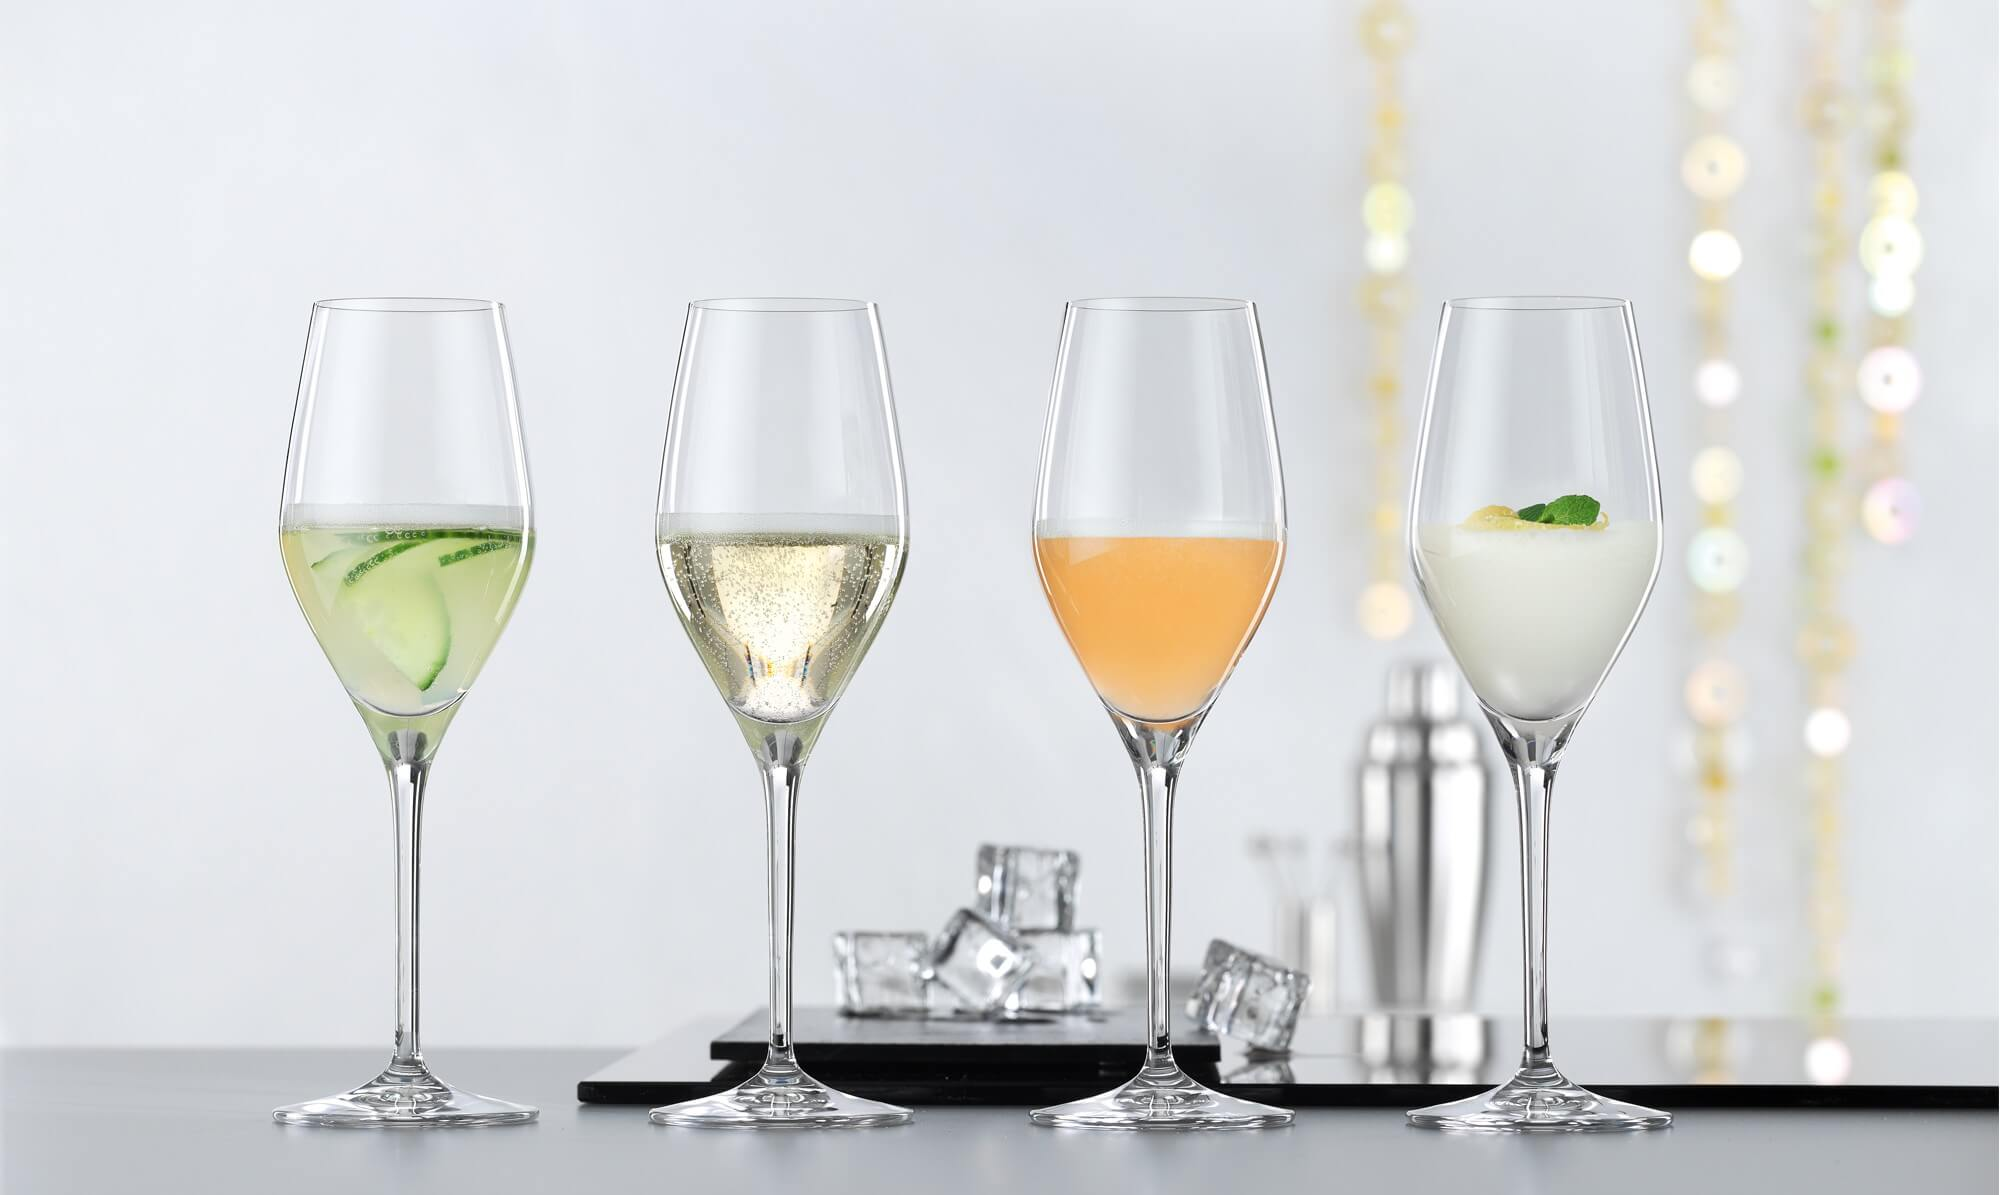 Set of 4 prosecco glasses